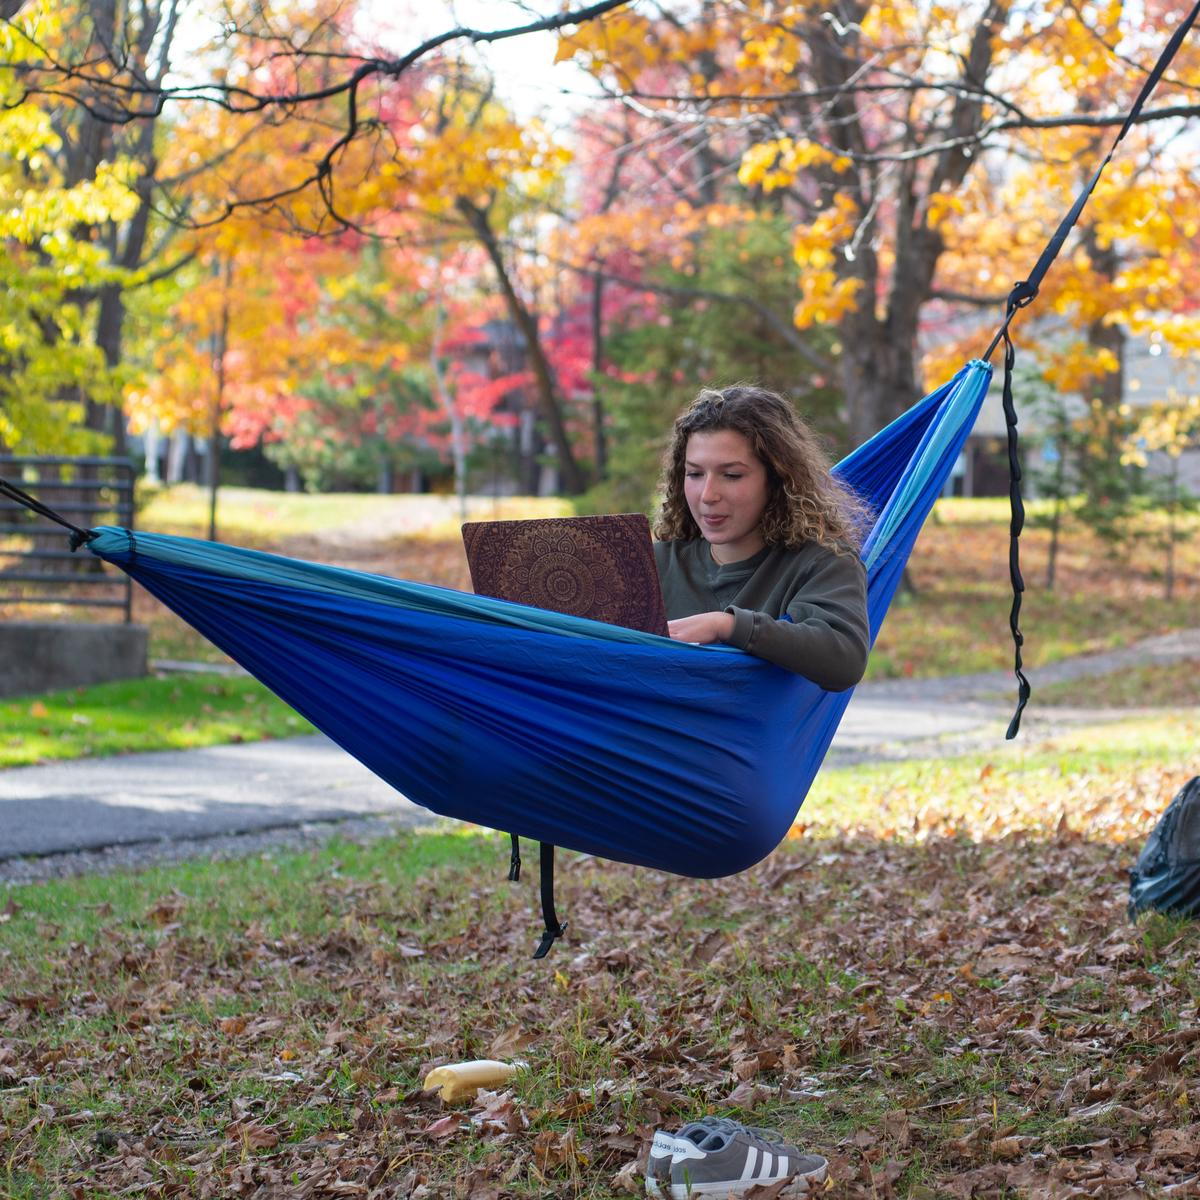 Student sitting in a hammock working on a laptop.